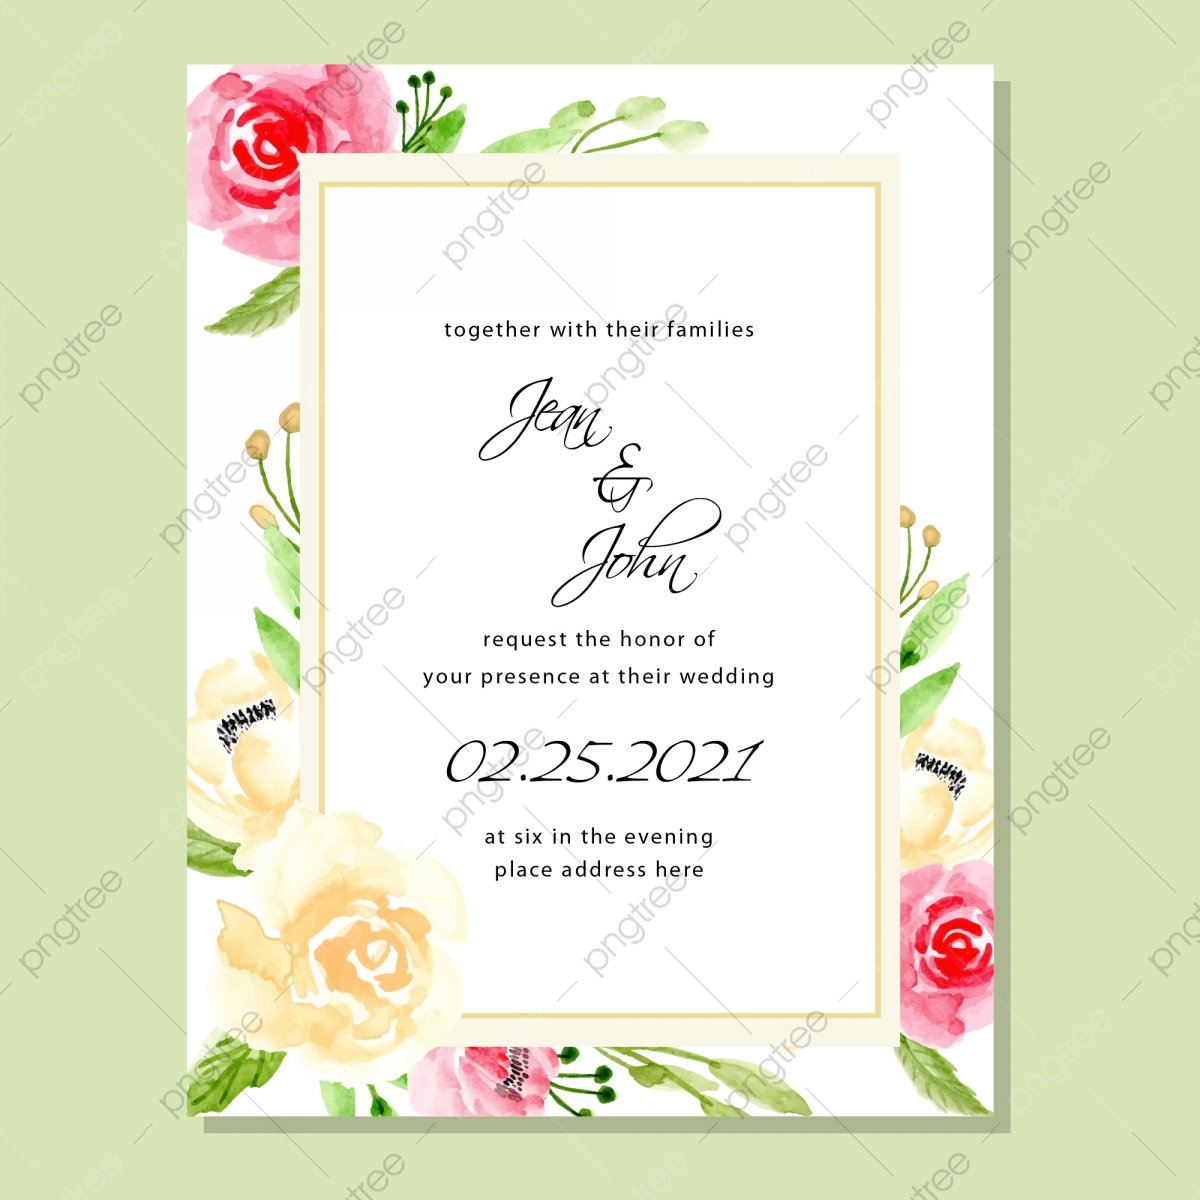 Kad Kahwin Floral Png Images Vector And Psd Files Free Download On Pngtree